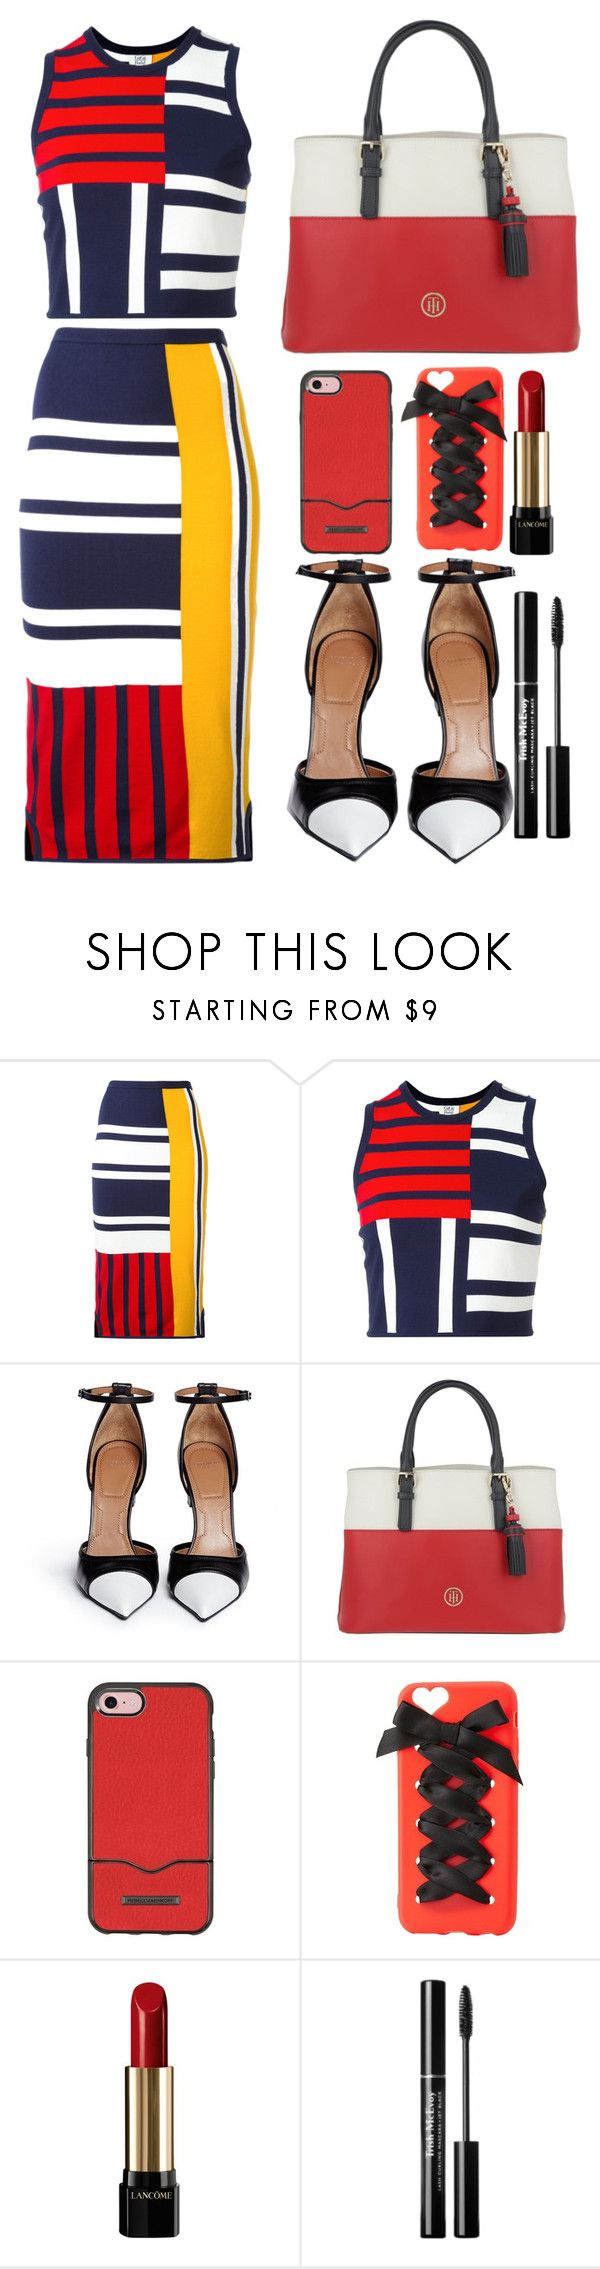 """tommy hilfiger dress"" by faesadanparkaia on Polyvore featuring Tommy Hilfiger, Givenchy, Rebecca Minkoff, Charlotte Russe and Lancôme"